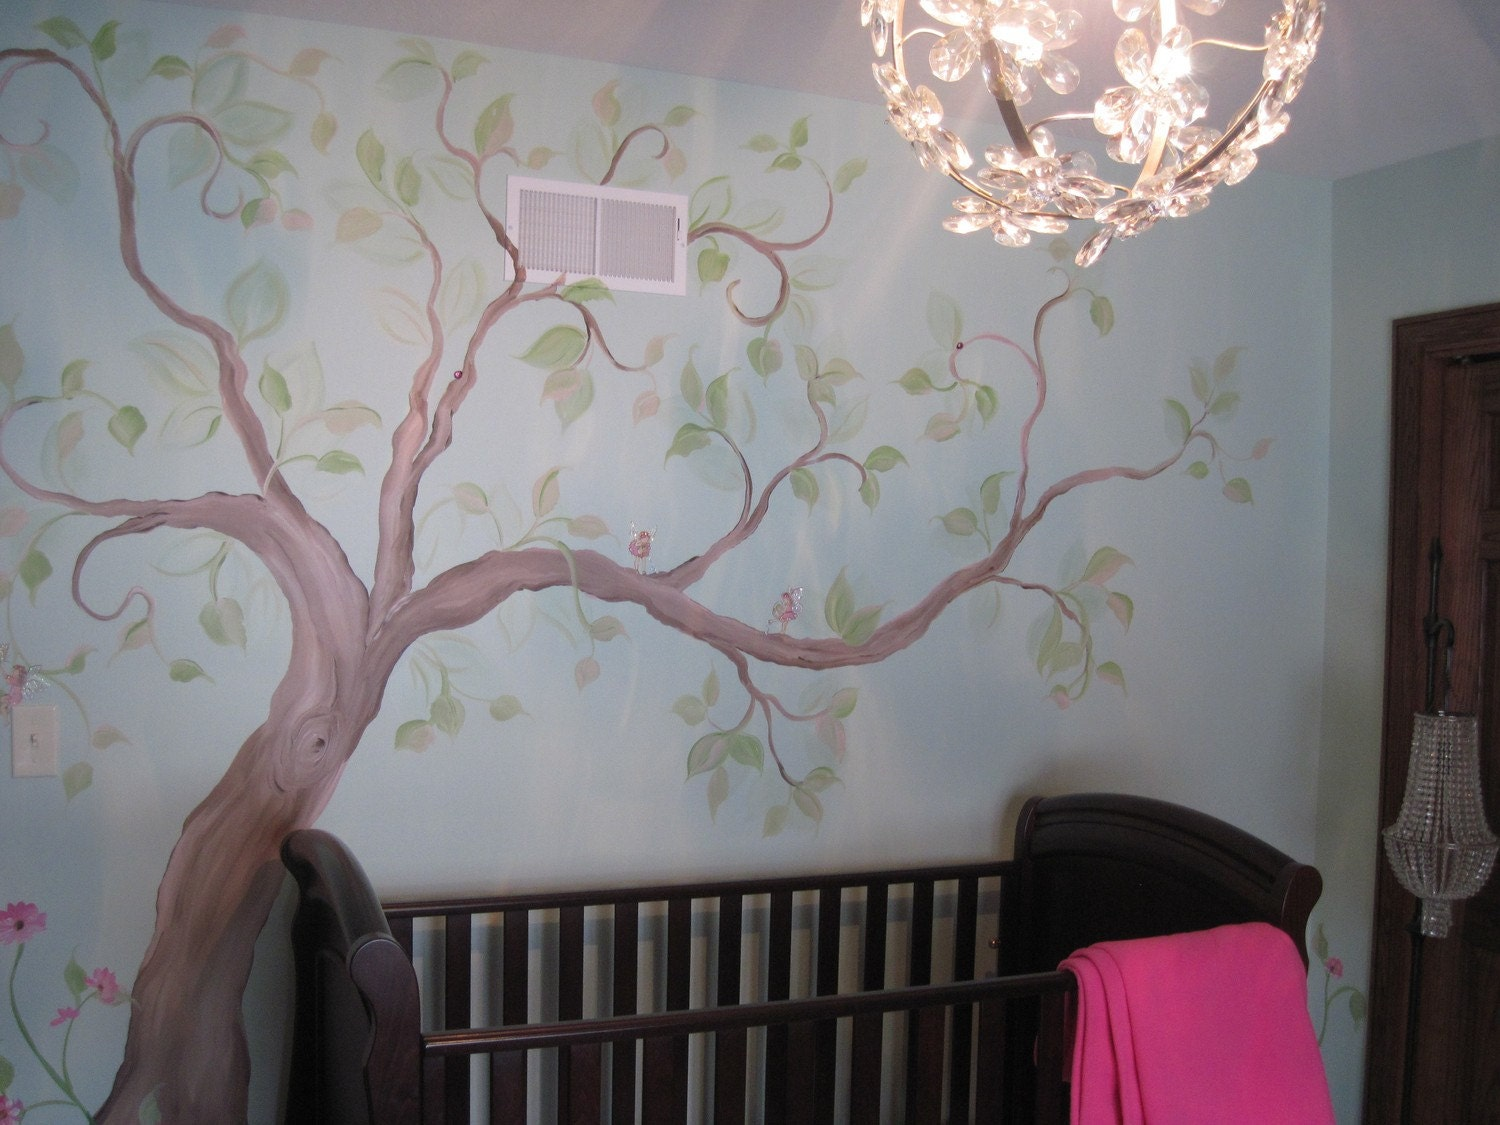 Estimate for tree mural nursery art hand painted custom for Baby nursery tree mural